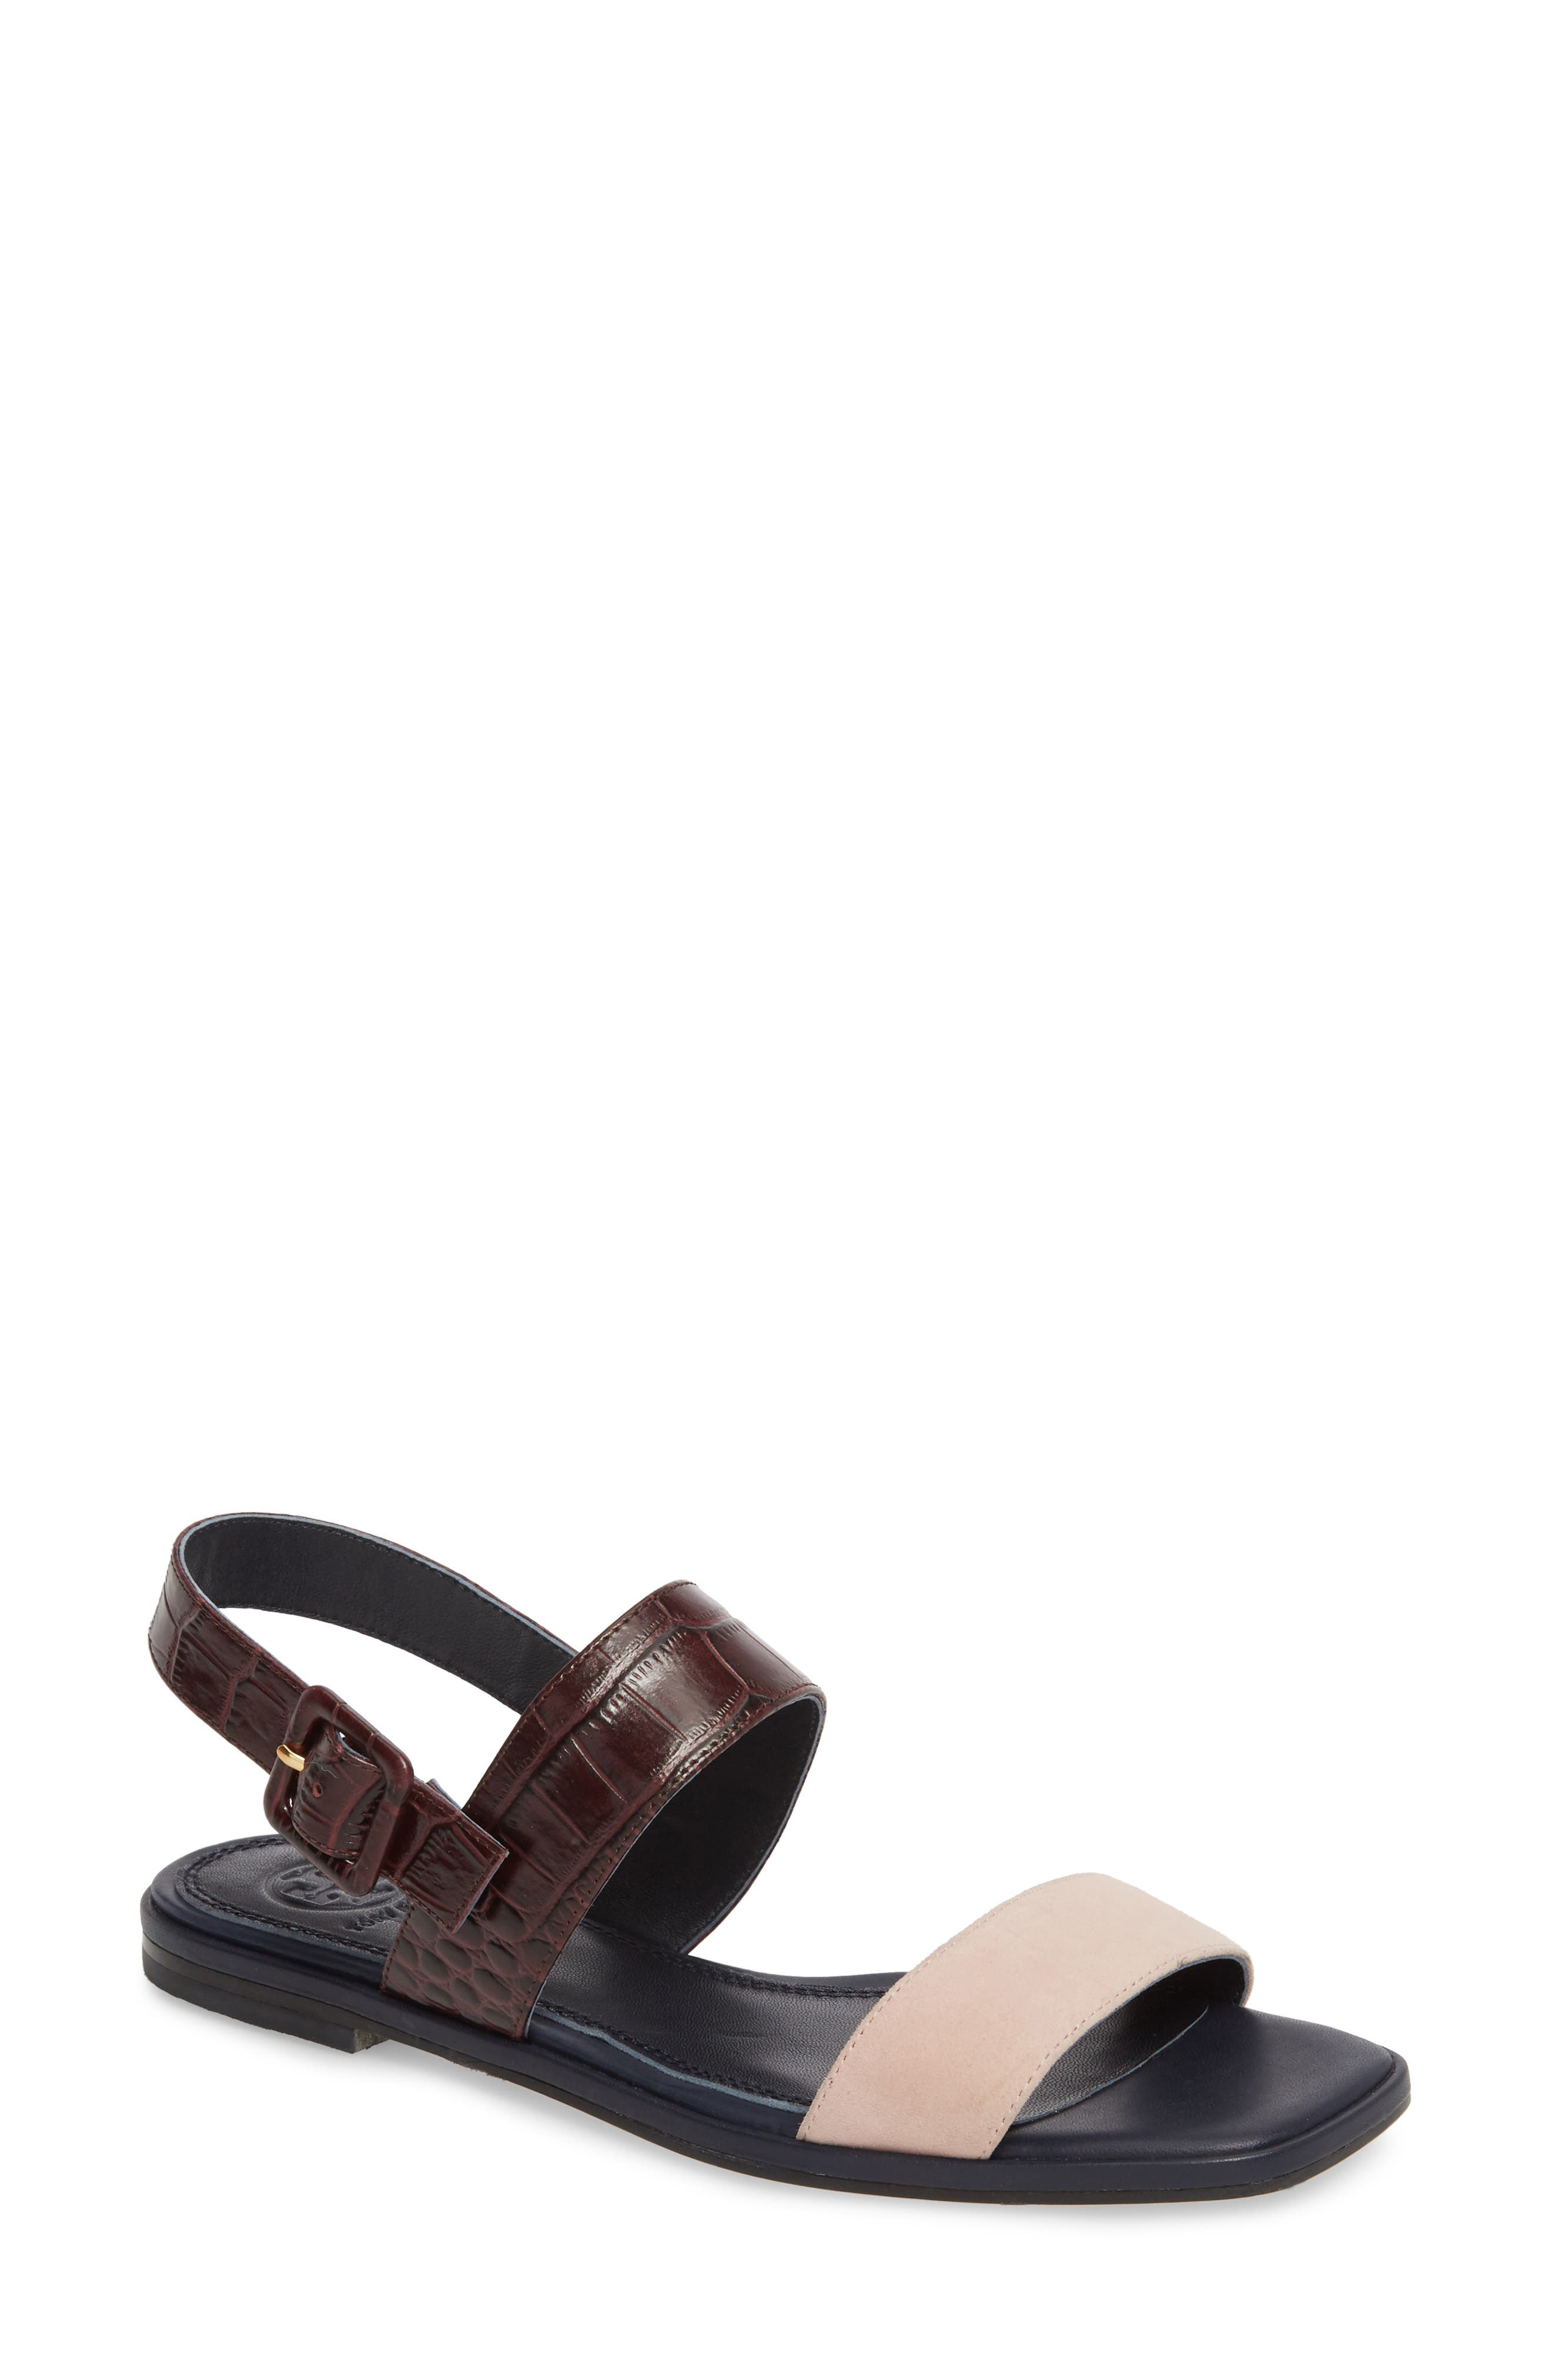 Delaney Double Strap Sandal,                             Main thumbnail 5, color,